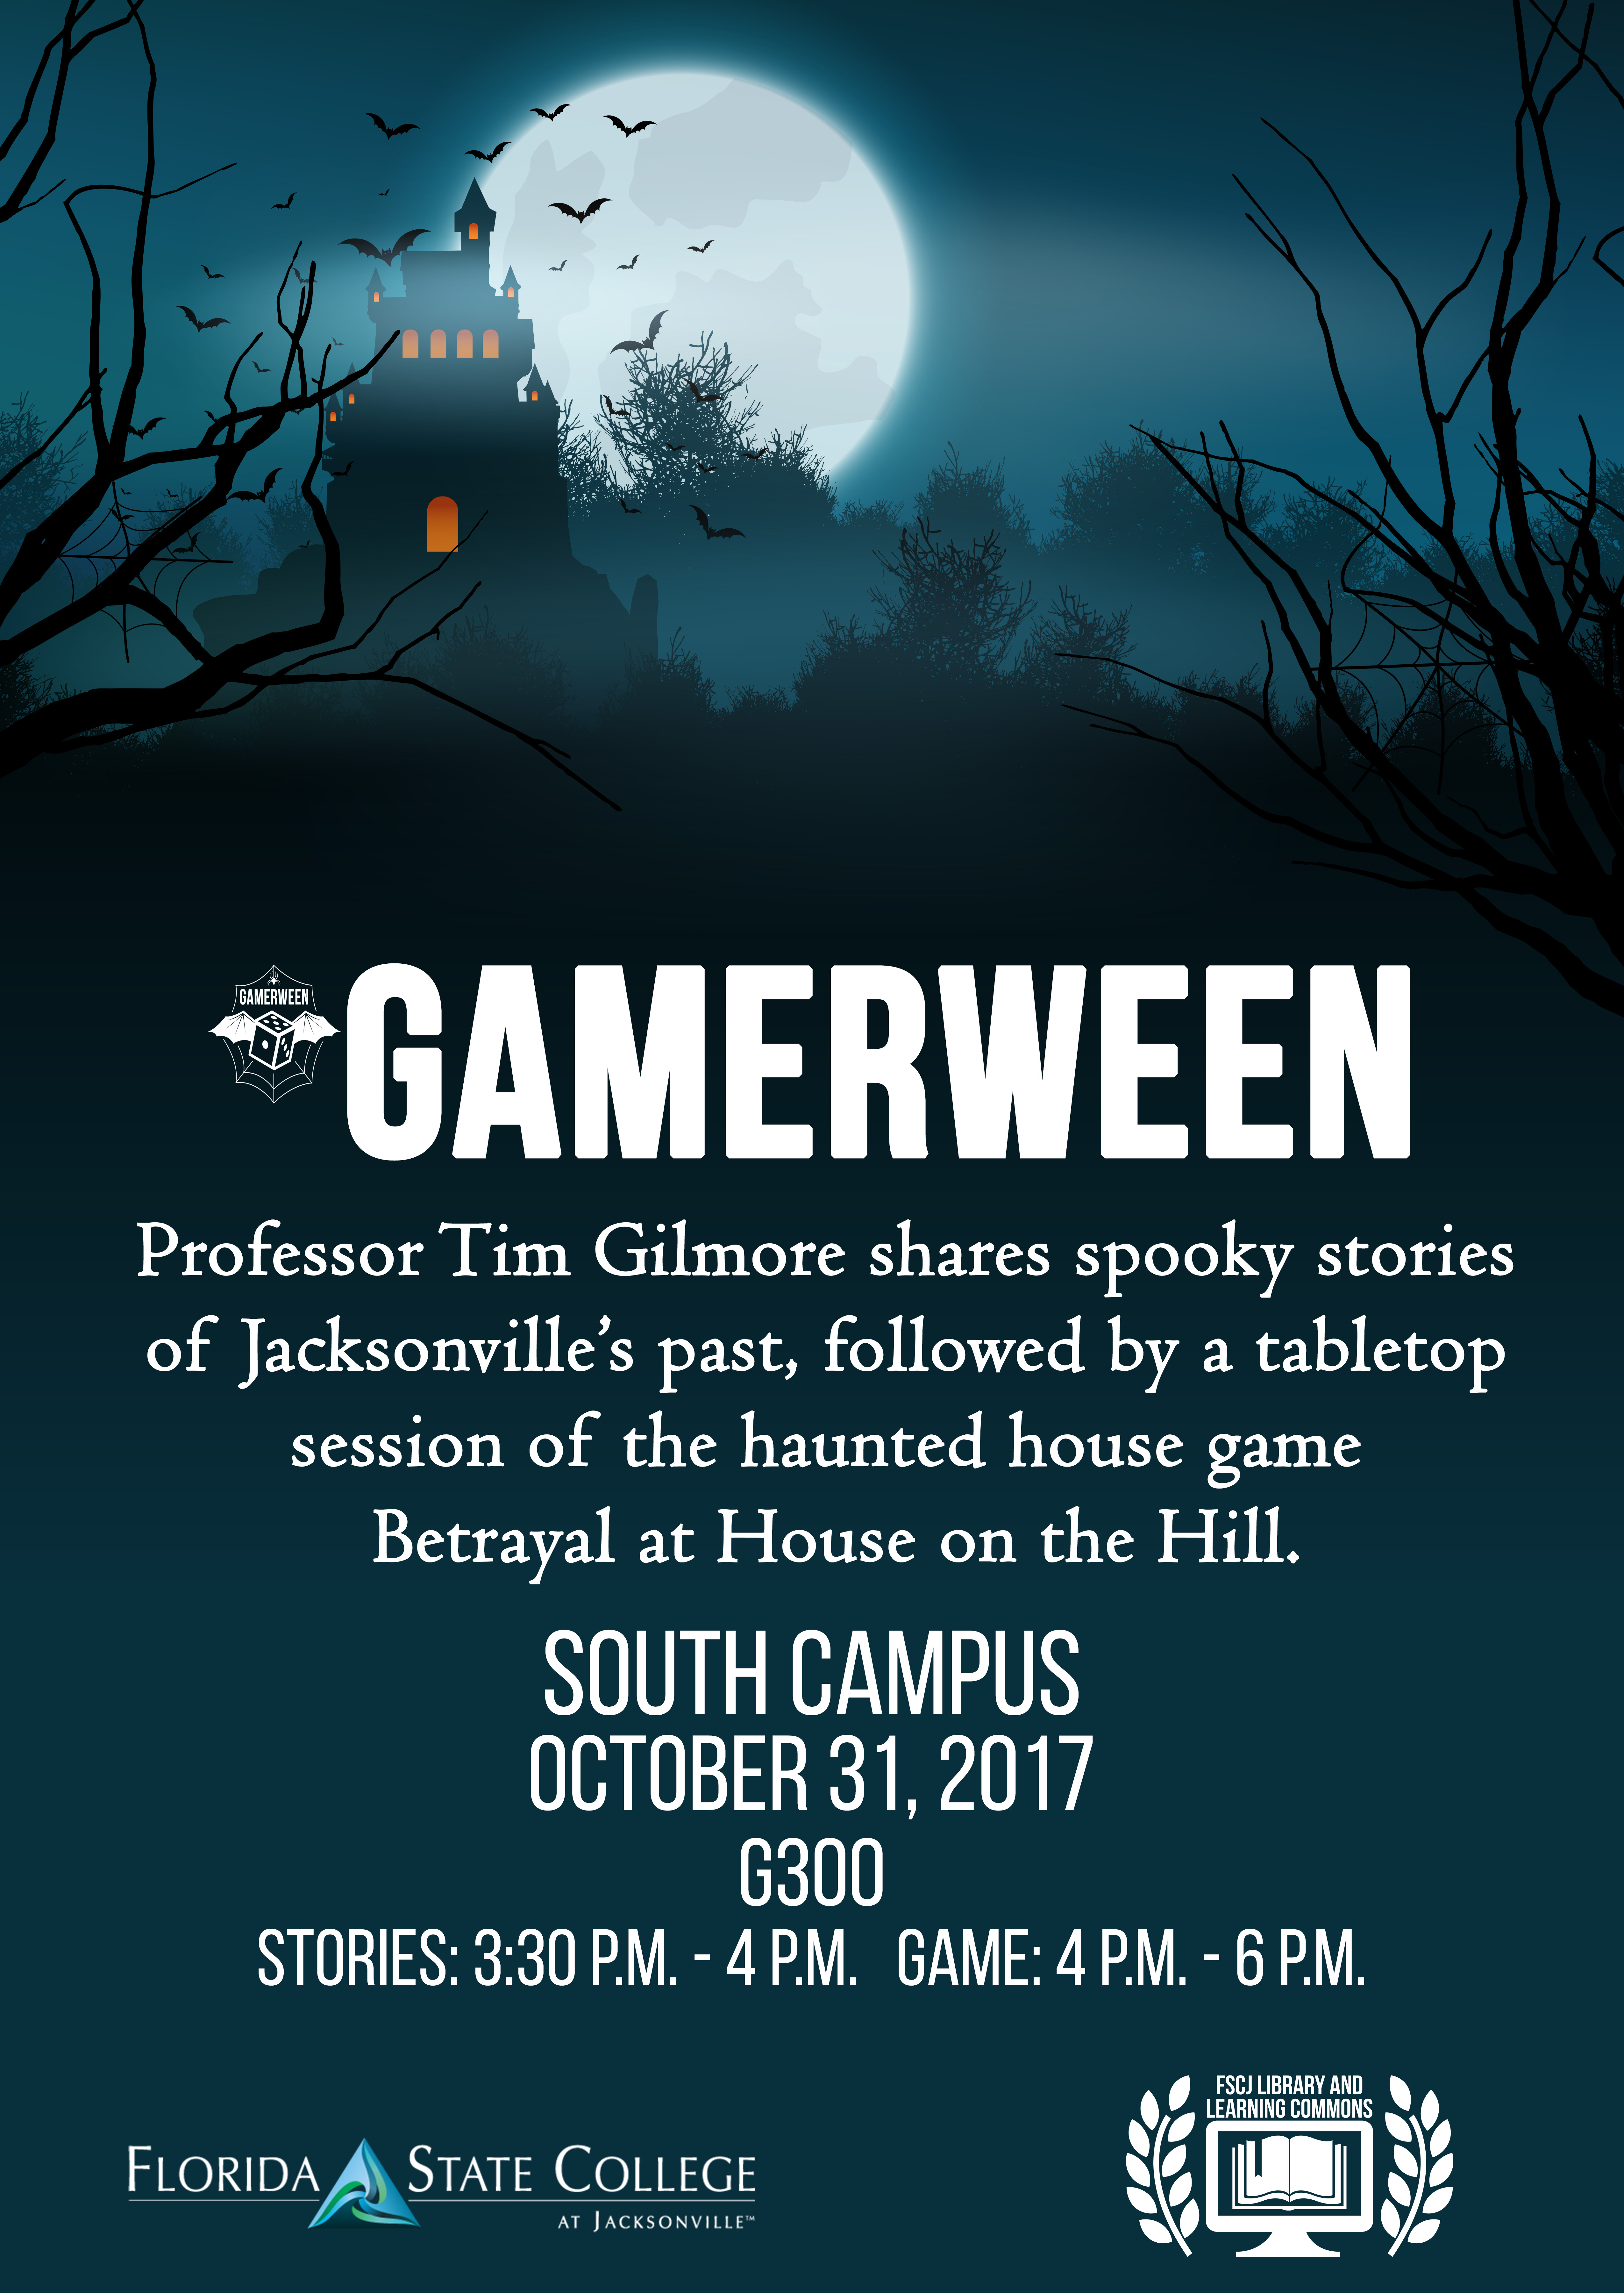 Gamerween at South: Spooky stories and Betrayal at House on the Hill